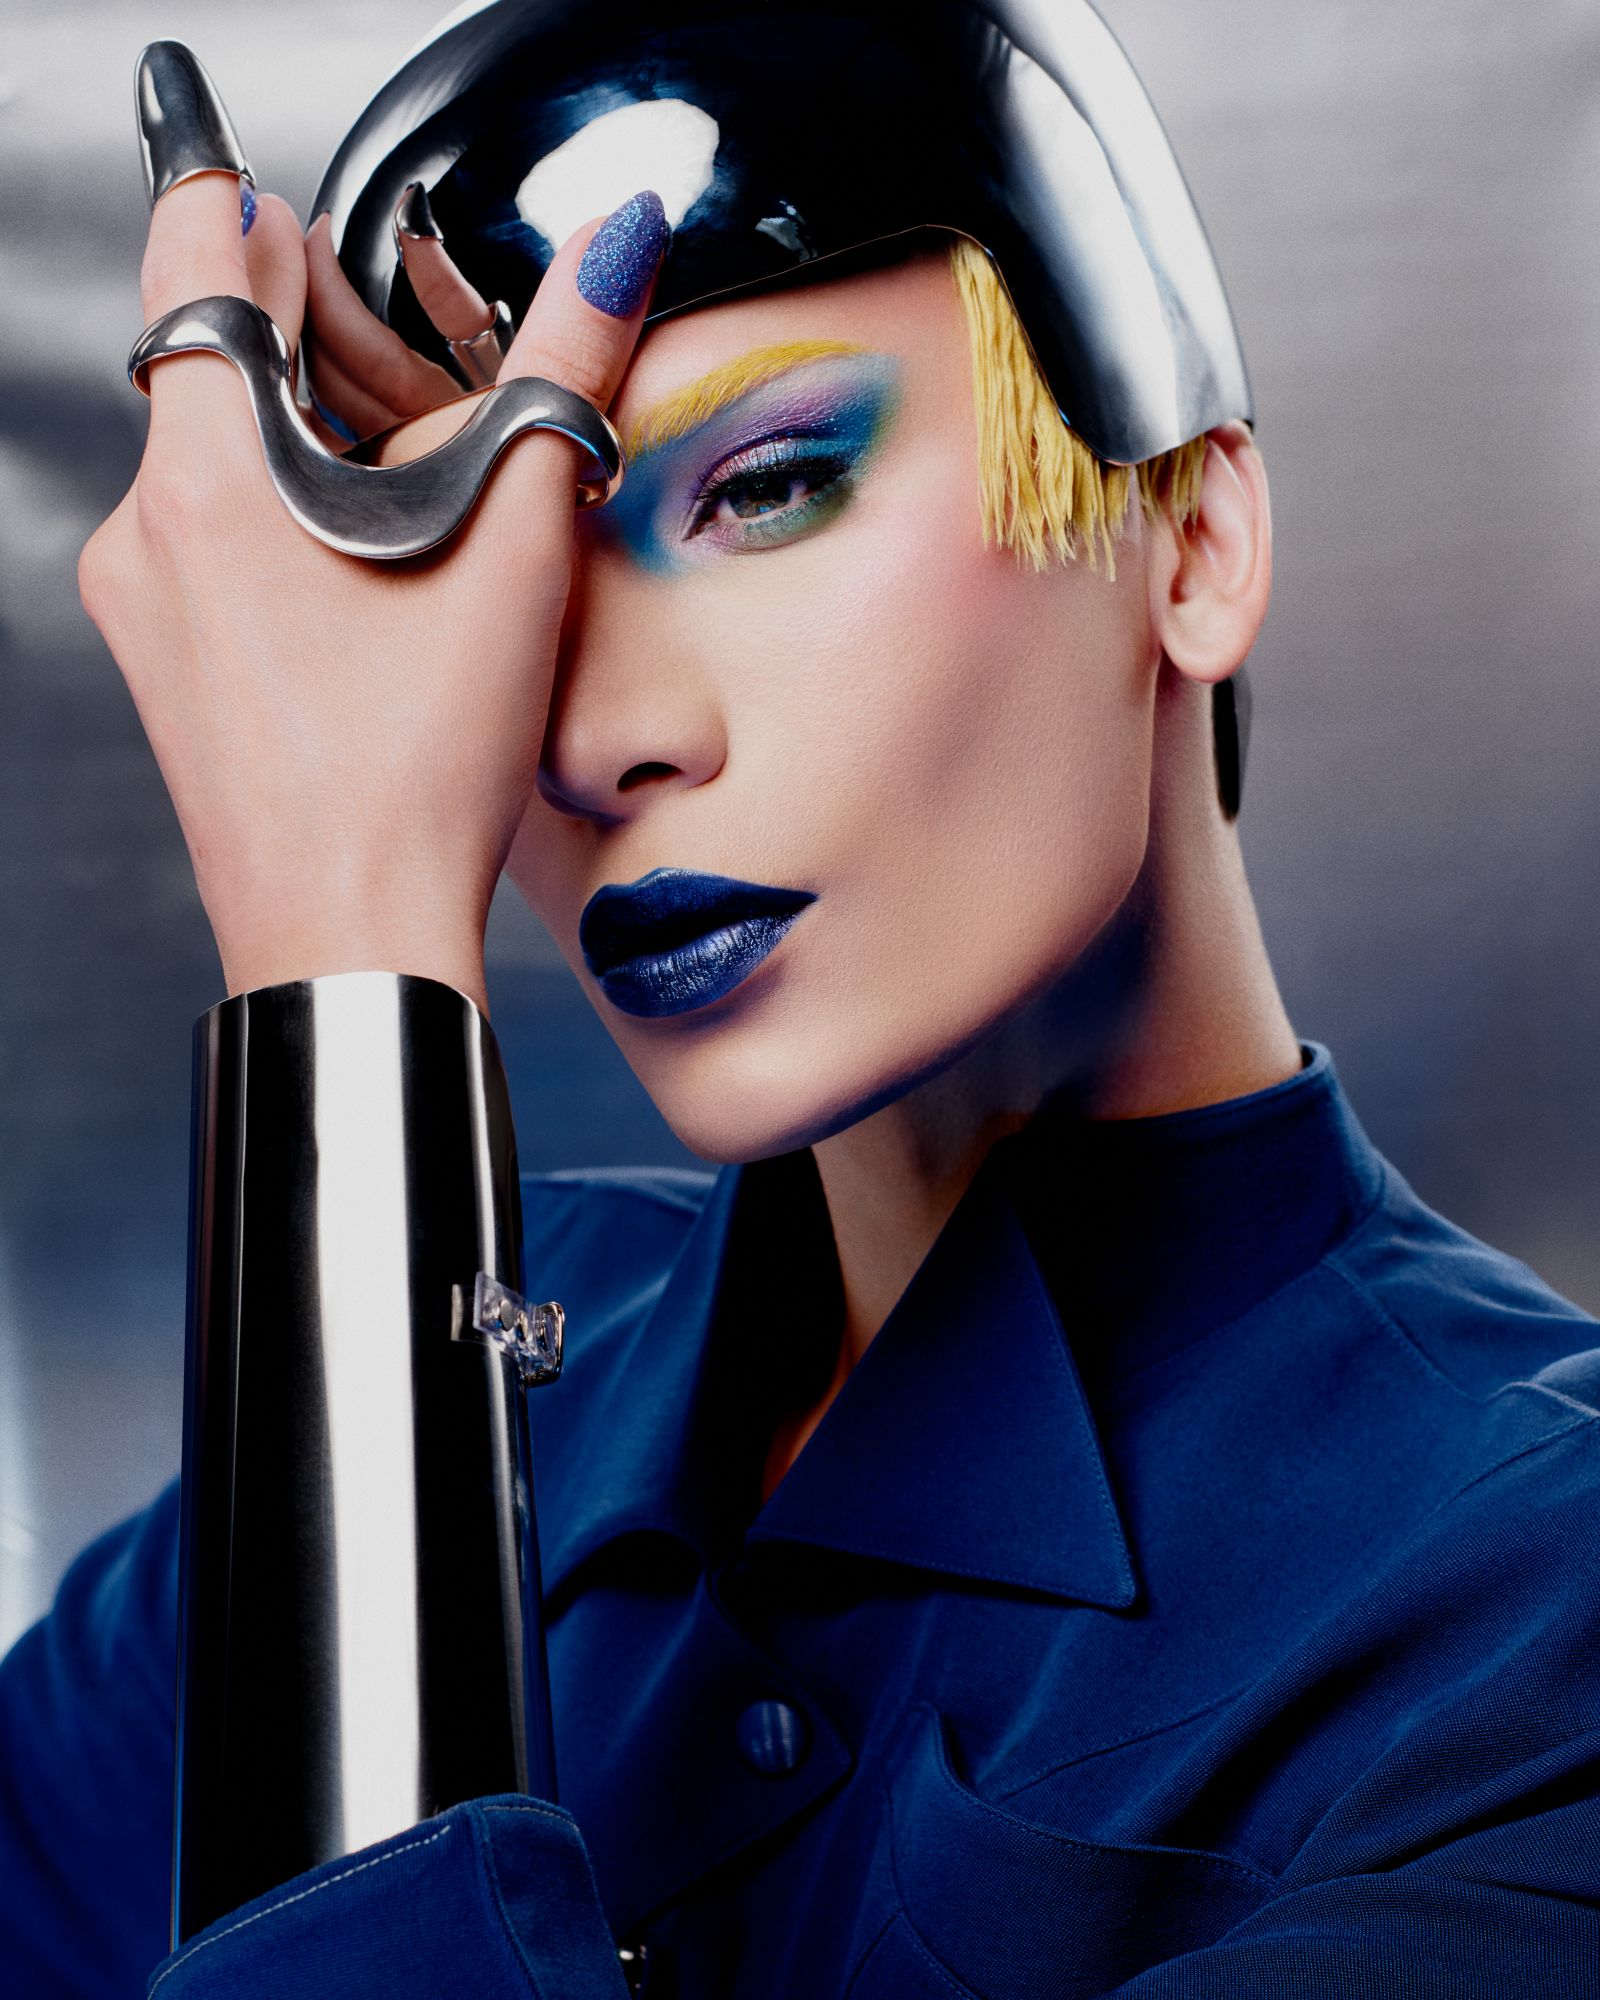 Beauty Talk: Miss Fame On Being A Drag Artist, Women Who Inspire, And The Future